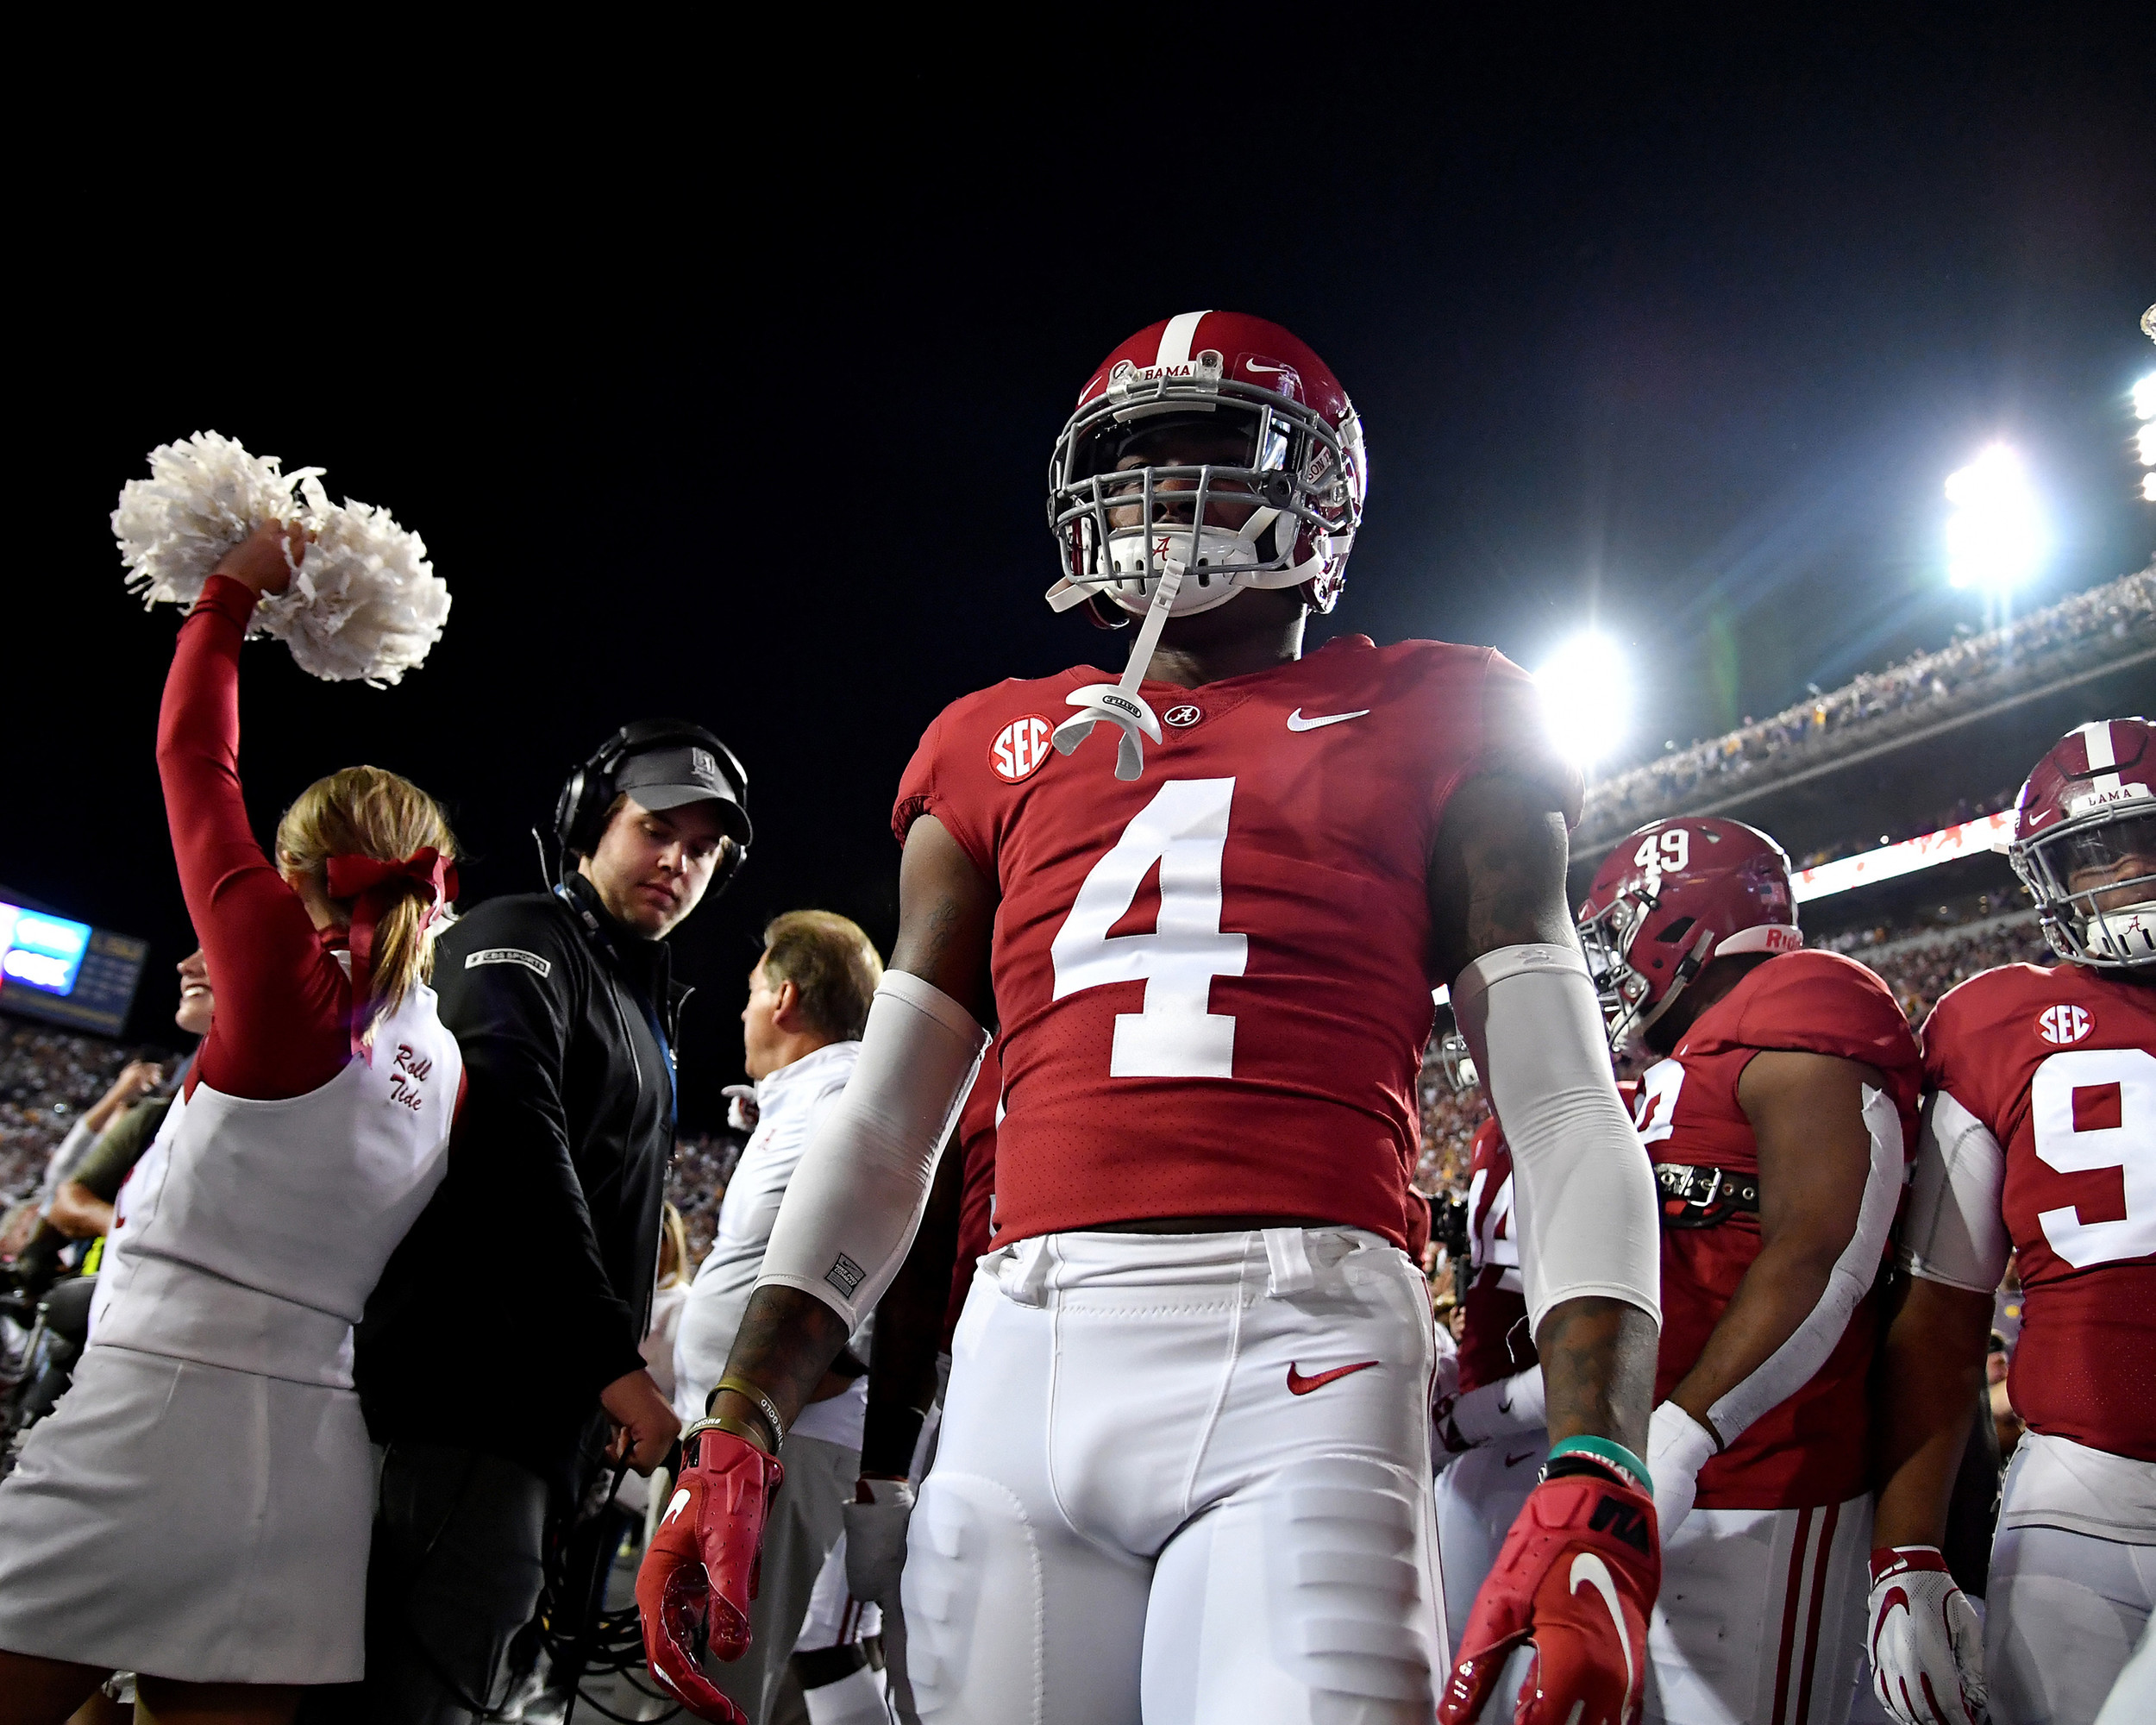 Alabama Crimson Tide wide receiver Jerry Jeudy (4) prepares to take the field prior to an NCAA football game between Alabama and the LSU Tigers Saturday, November 3, 2018, at Tiger Stadium in Baton Rouge, La. Alabama wins 29-0. (Photo by Lee Walls)